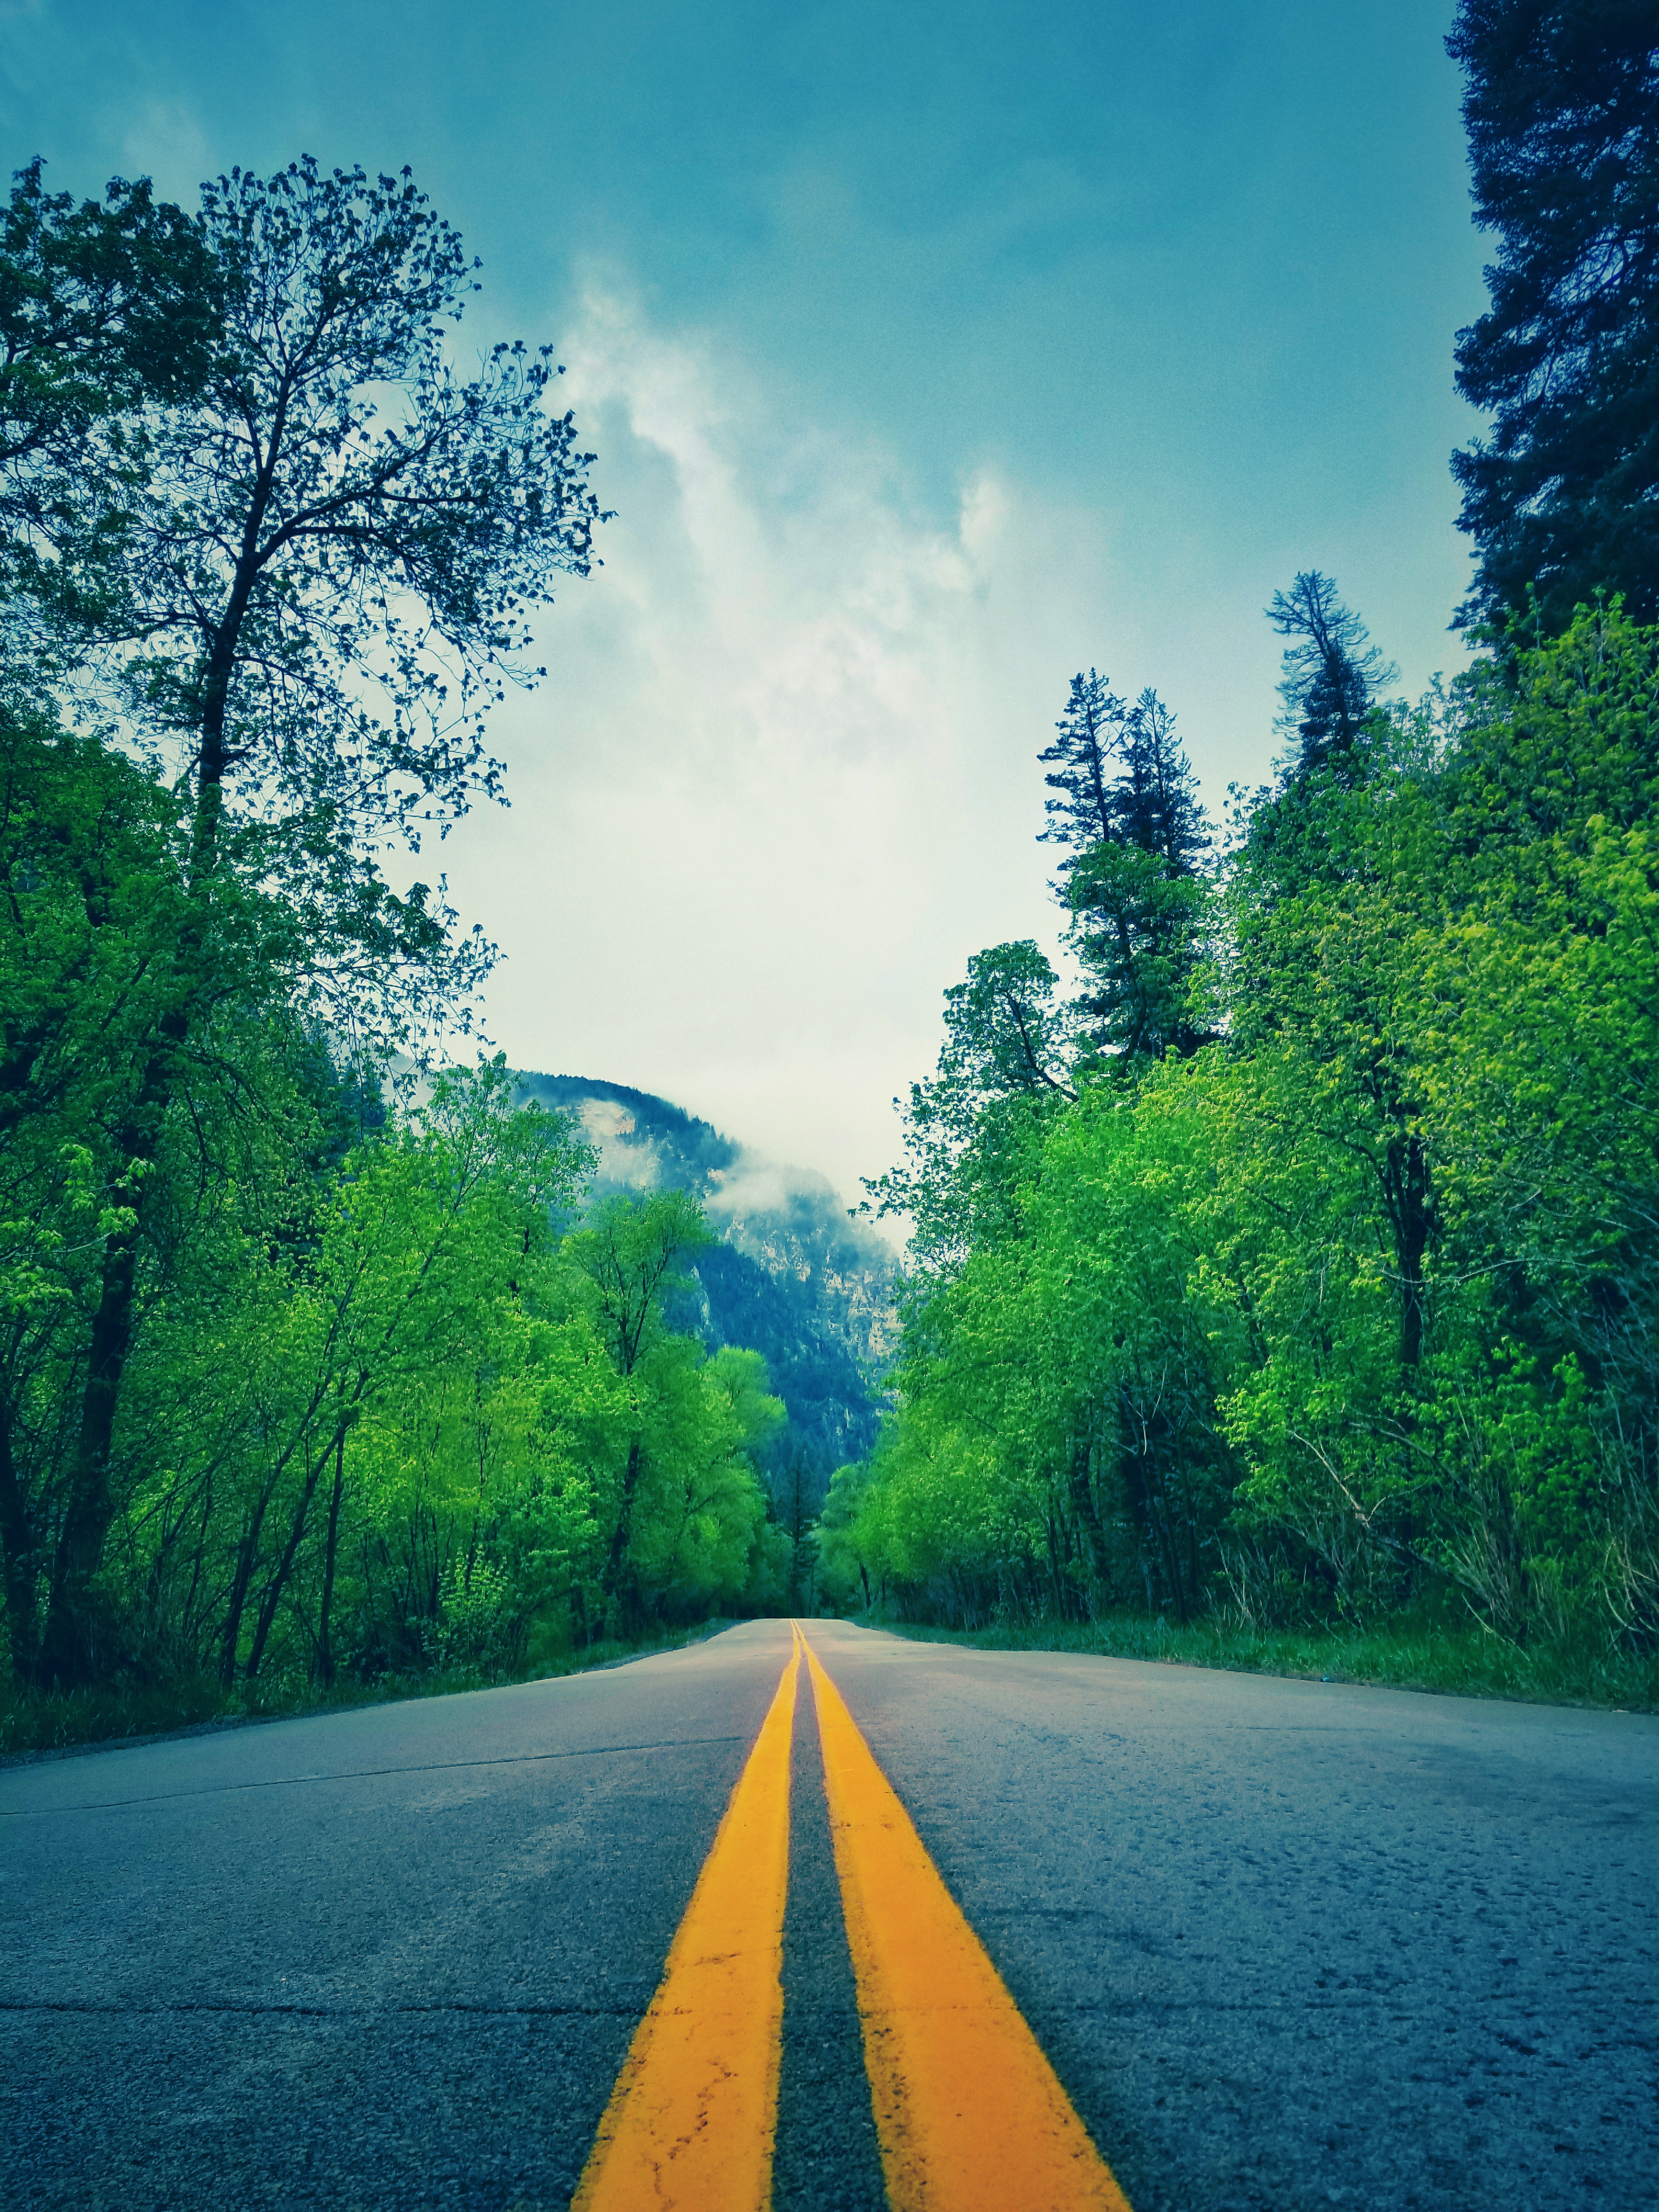 Car Wallpaper For Android Mobile Road Images 183 Pexels 183 Free Stock Photos